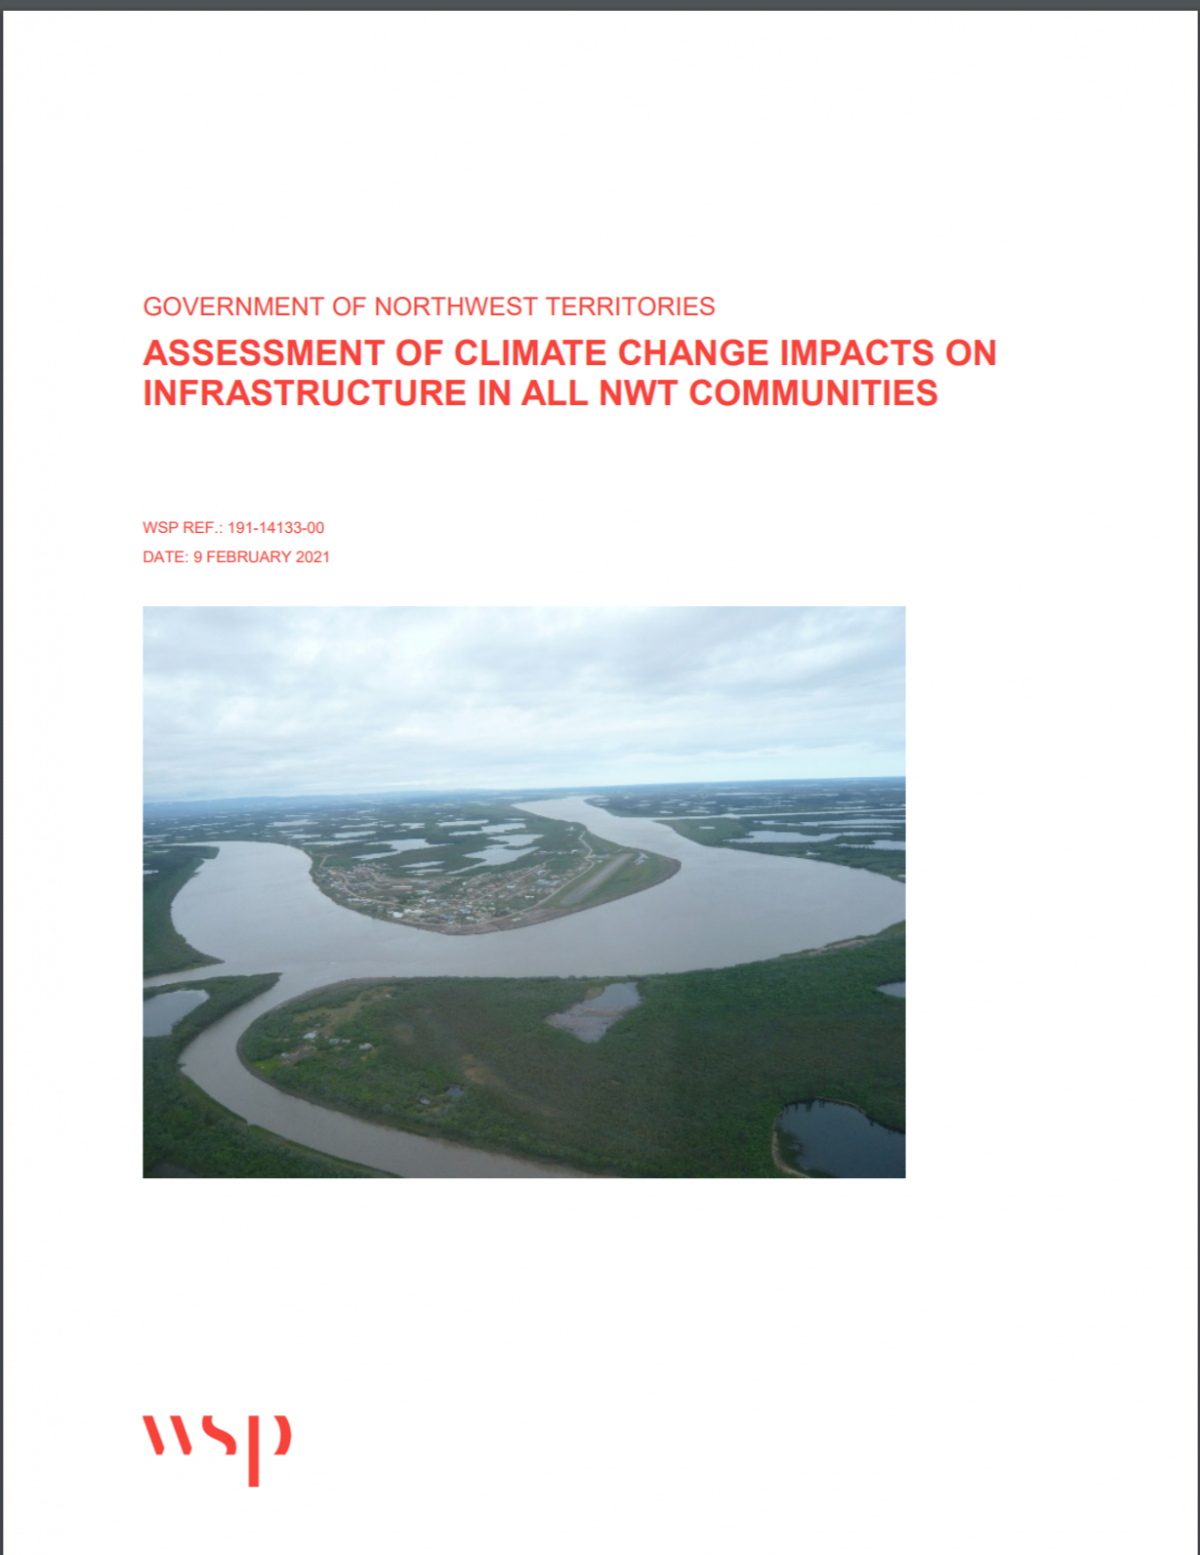 GOVERNMENT OF NORTHWEST TERRITORIES ASSESSMENT OF CLIMATE CHANGE IMPACTS ON INFRASTRUCTURE IN ALL NWT COMMUNITIES